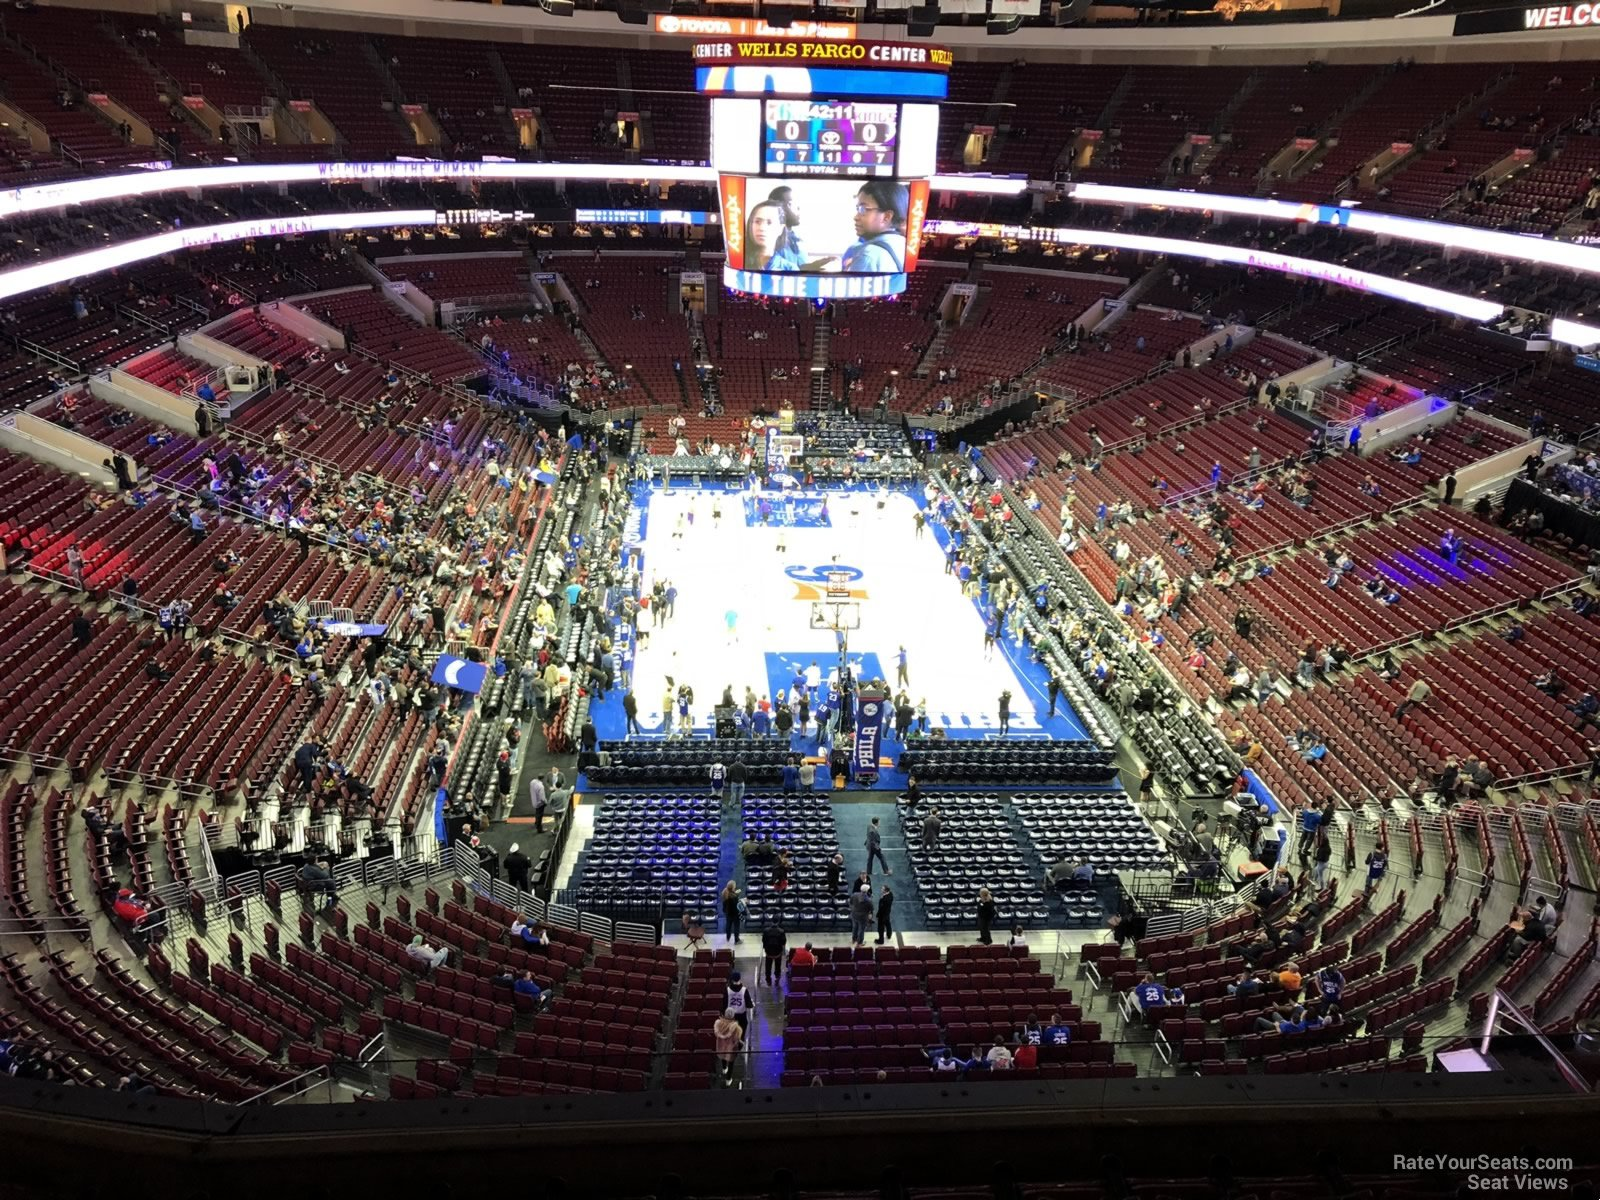 Philadelphia 76ers Seat View For Wells Fargo Center Section 207